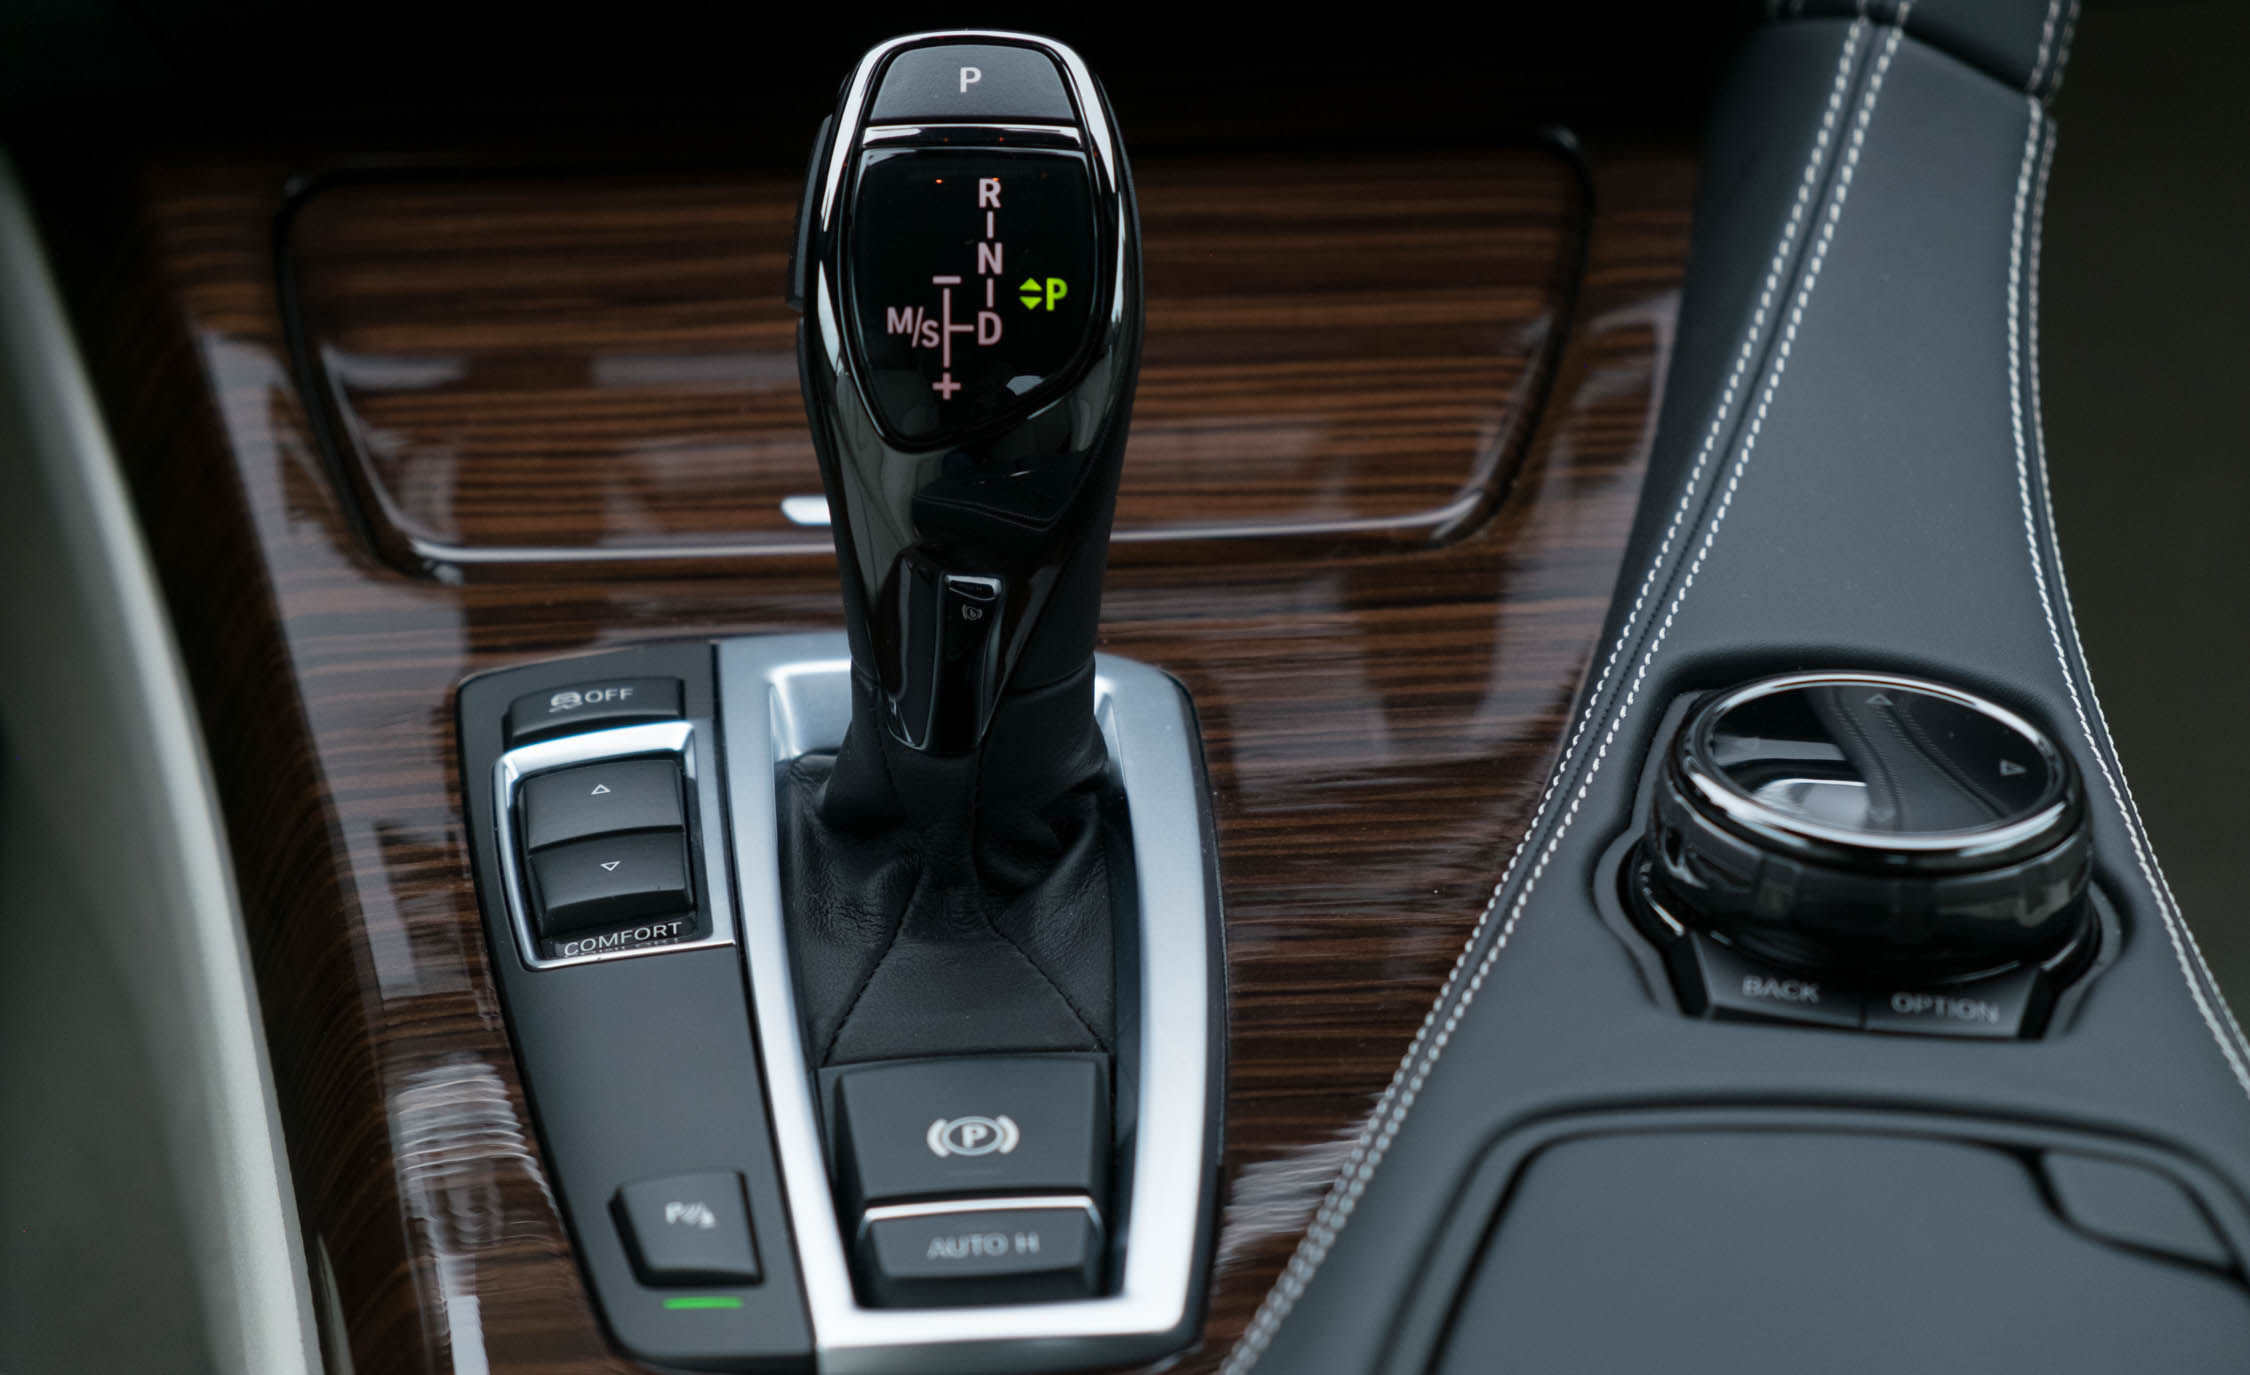 2016 BMW 640i Convertible Interior Gear Shift Knob